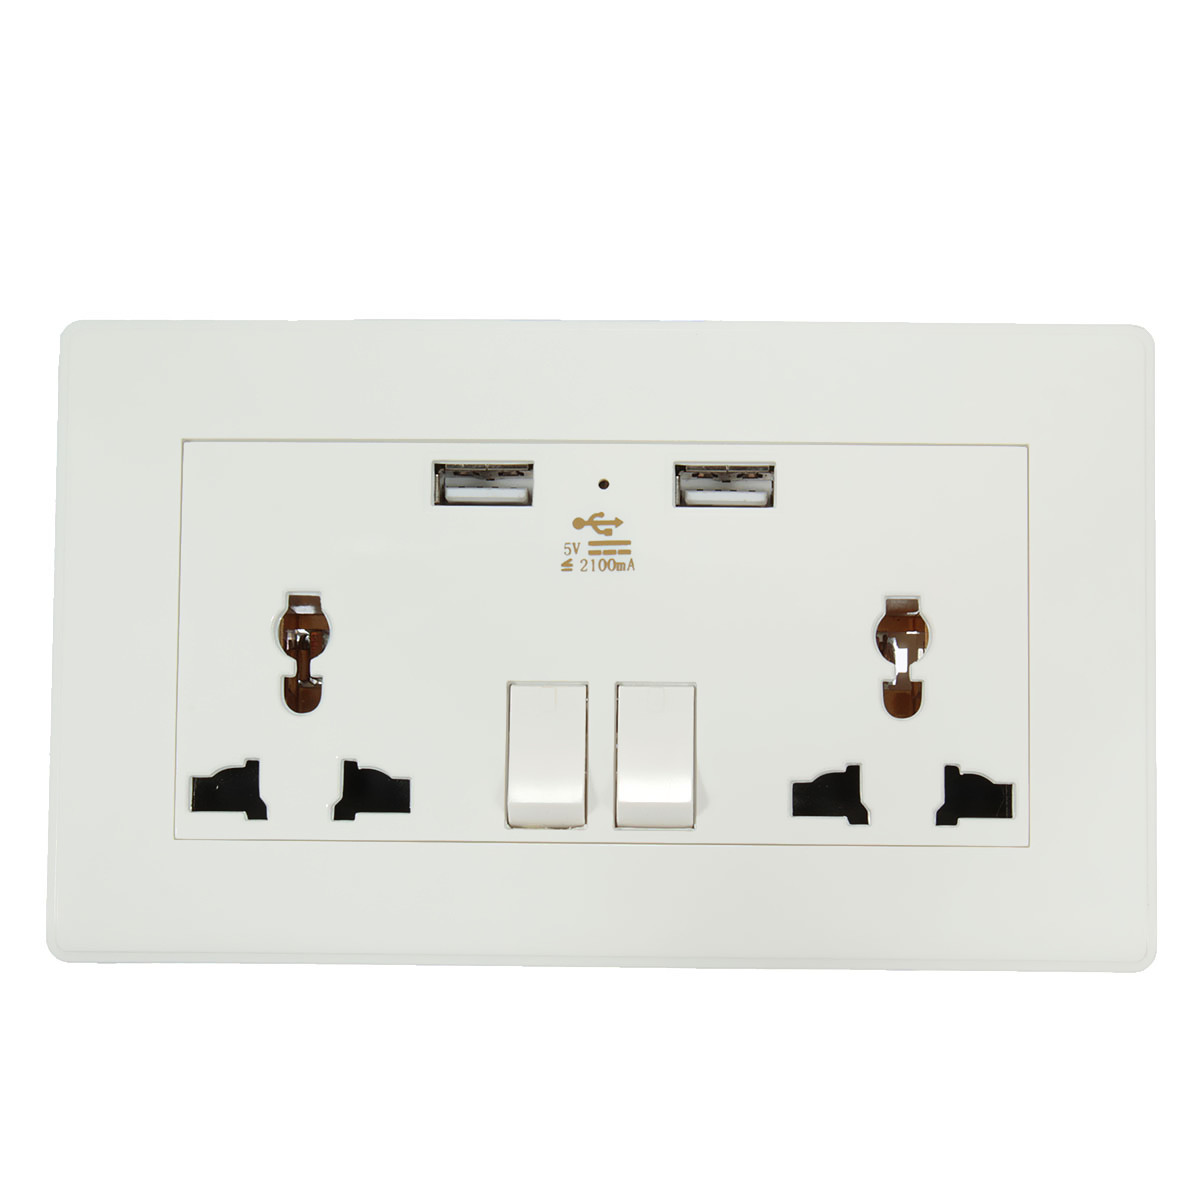 5V 2.1A Electric Dual Port USB Wall AC Power Socket Charger Station Outlet Adapter Plate